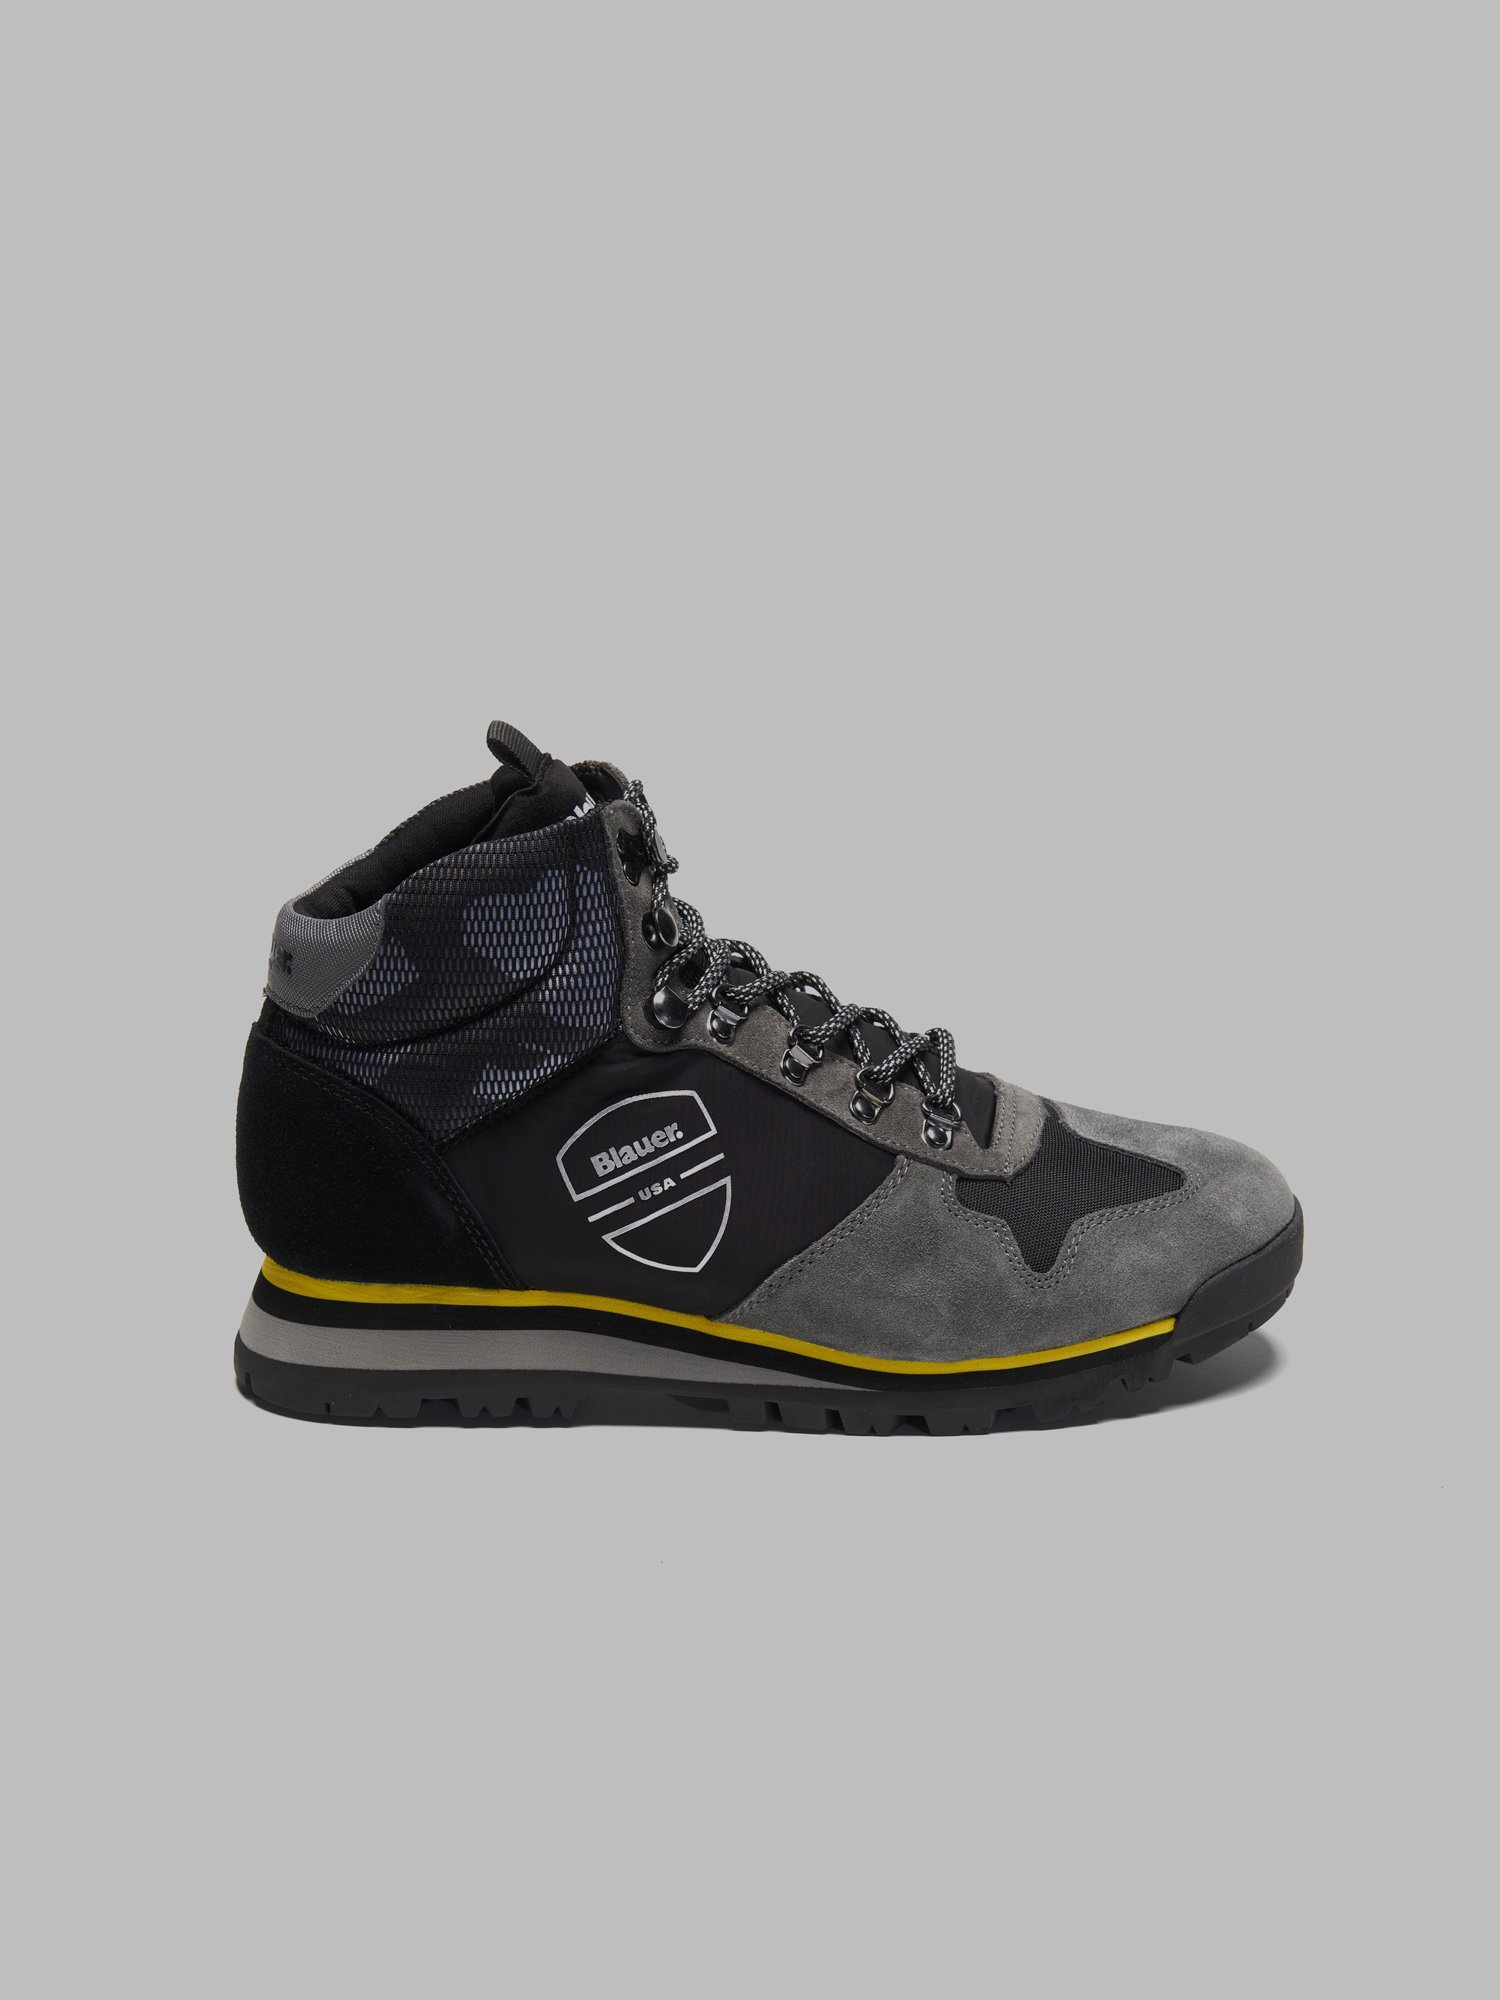 AKRON NYLON SUEDE HIKING HIGH-TOP SNEAKERS - Blauer